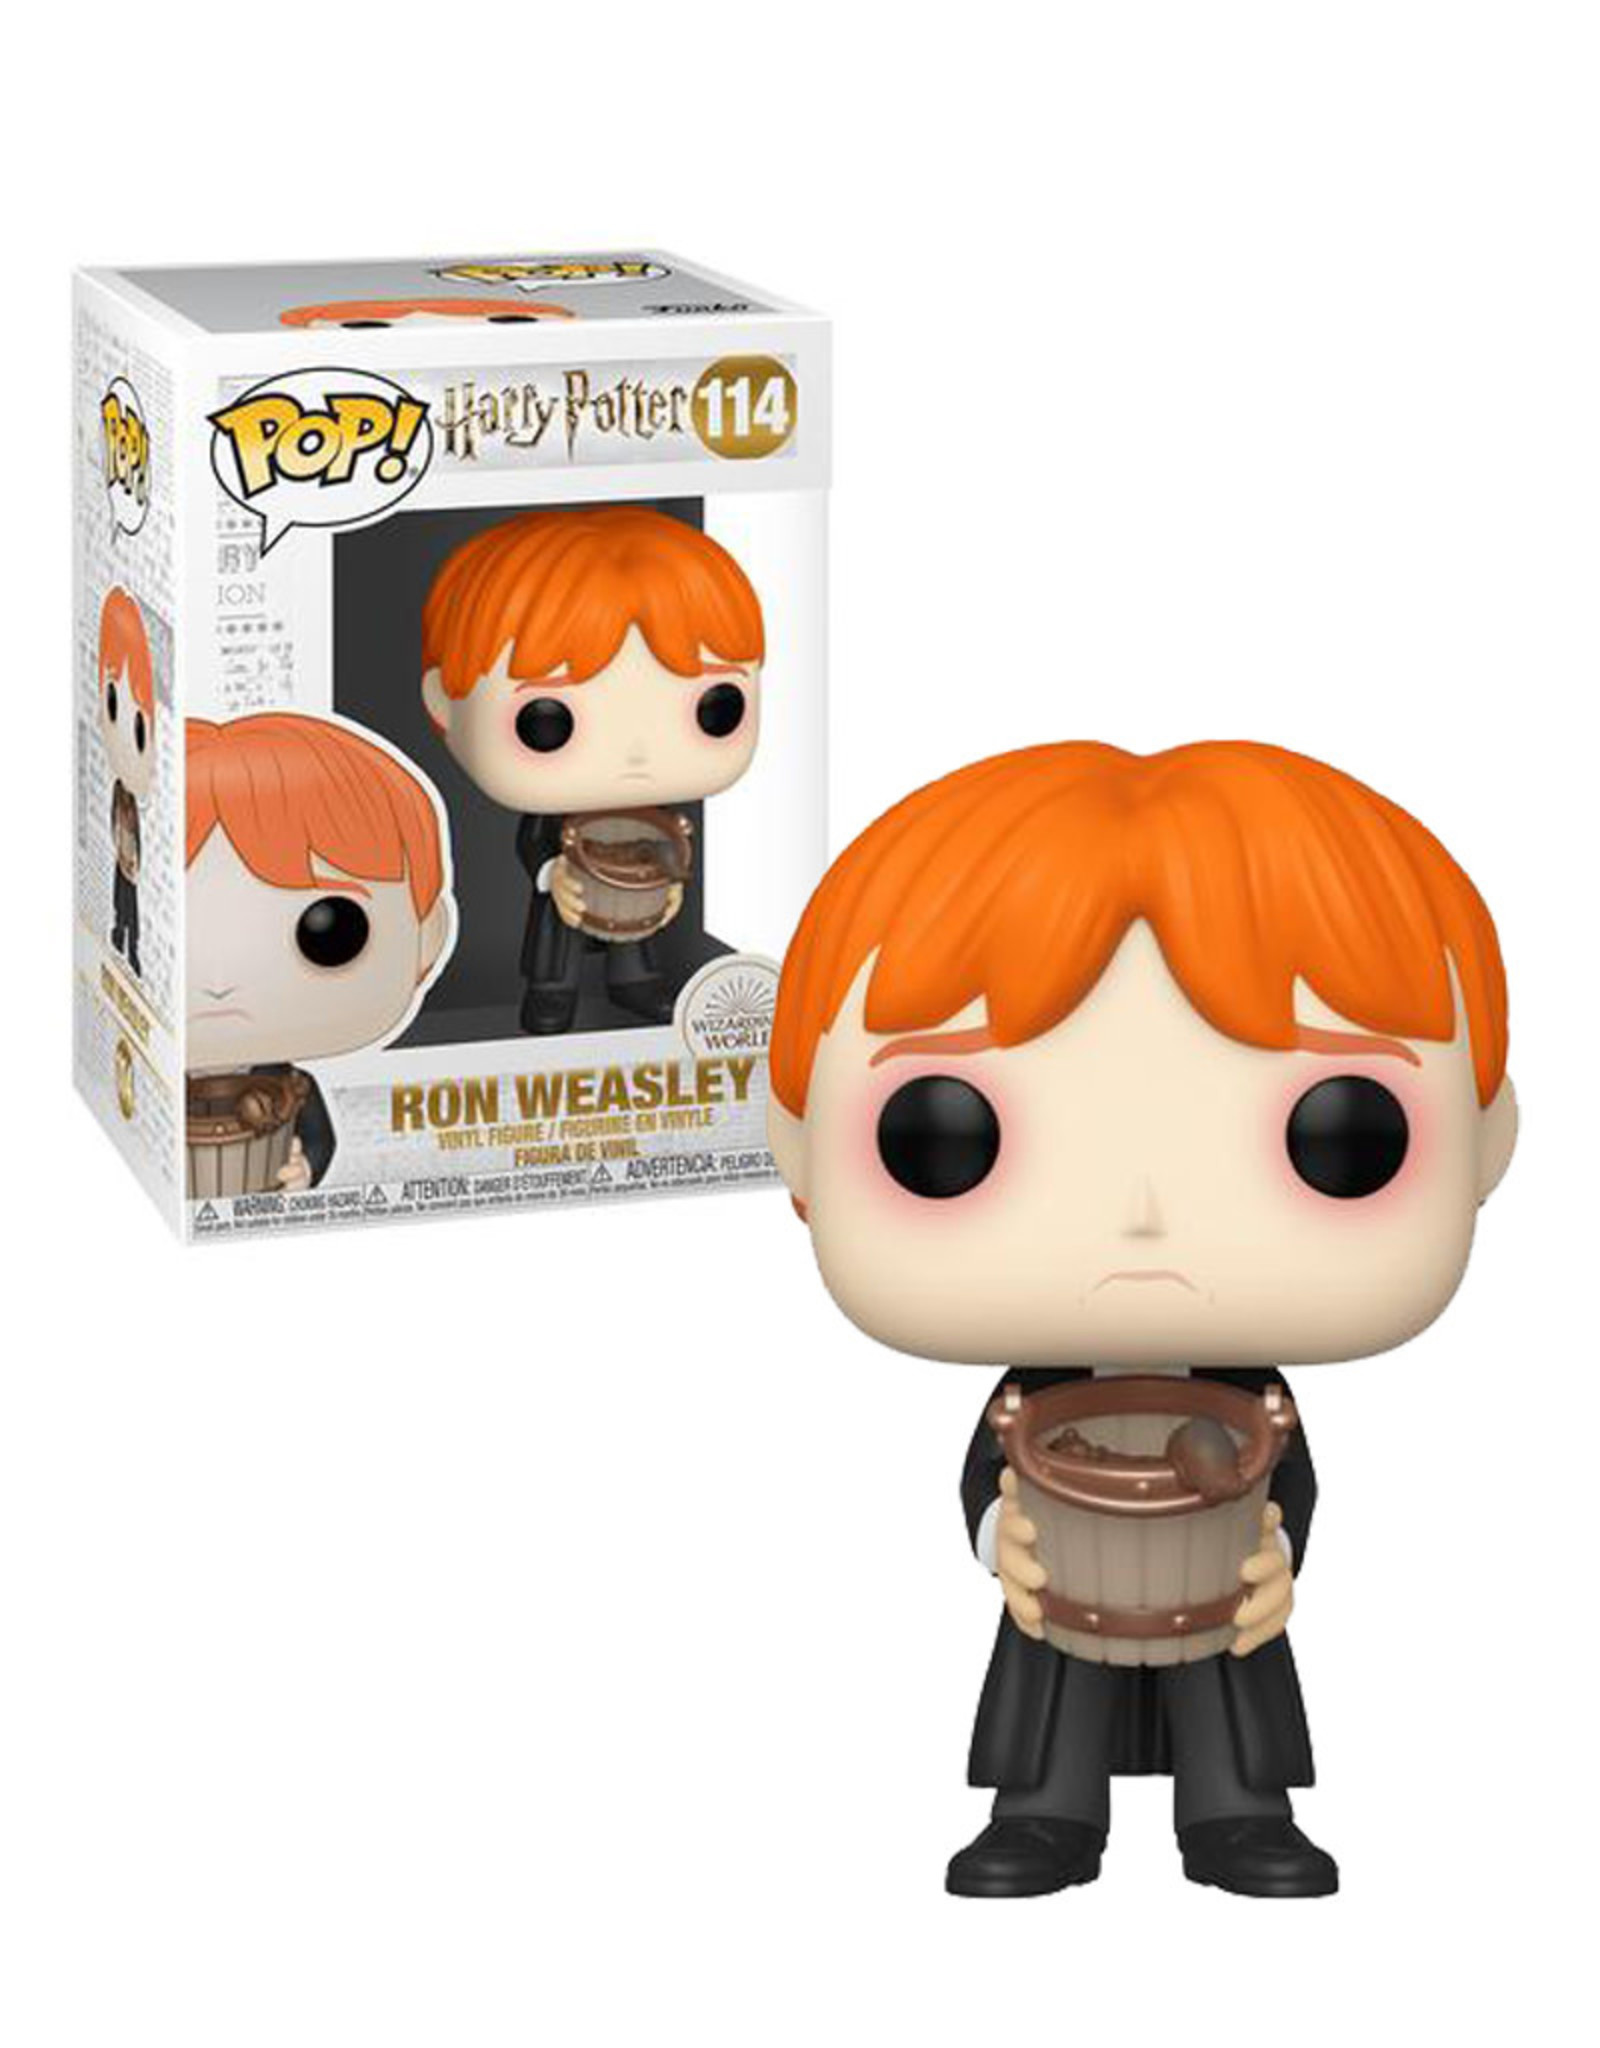 Harry Potter Ron Weasley 114 ( Funko Pop ) Harry Potter